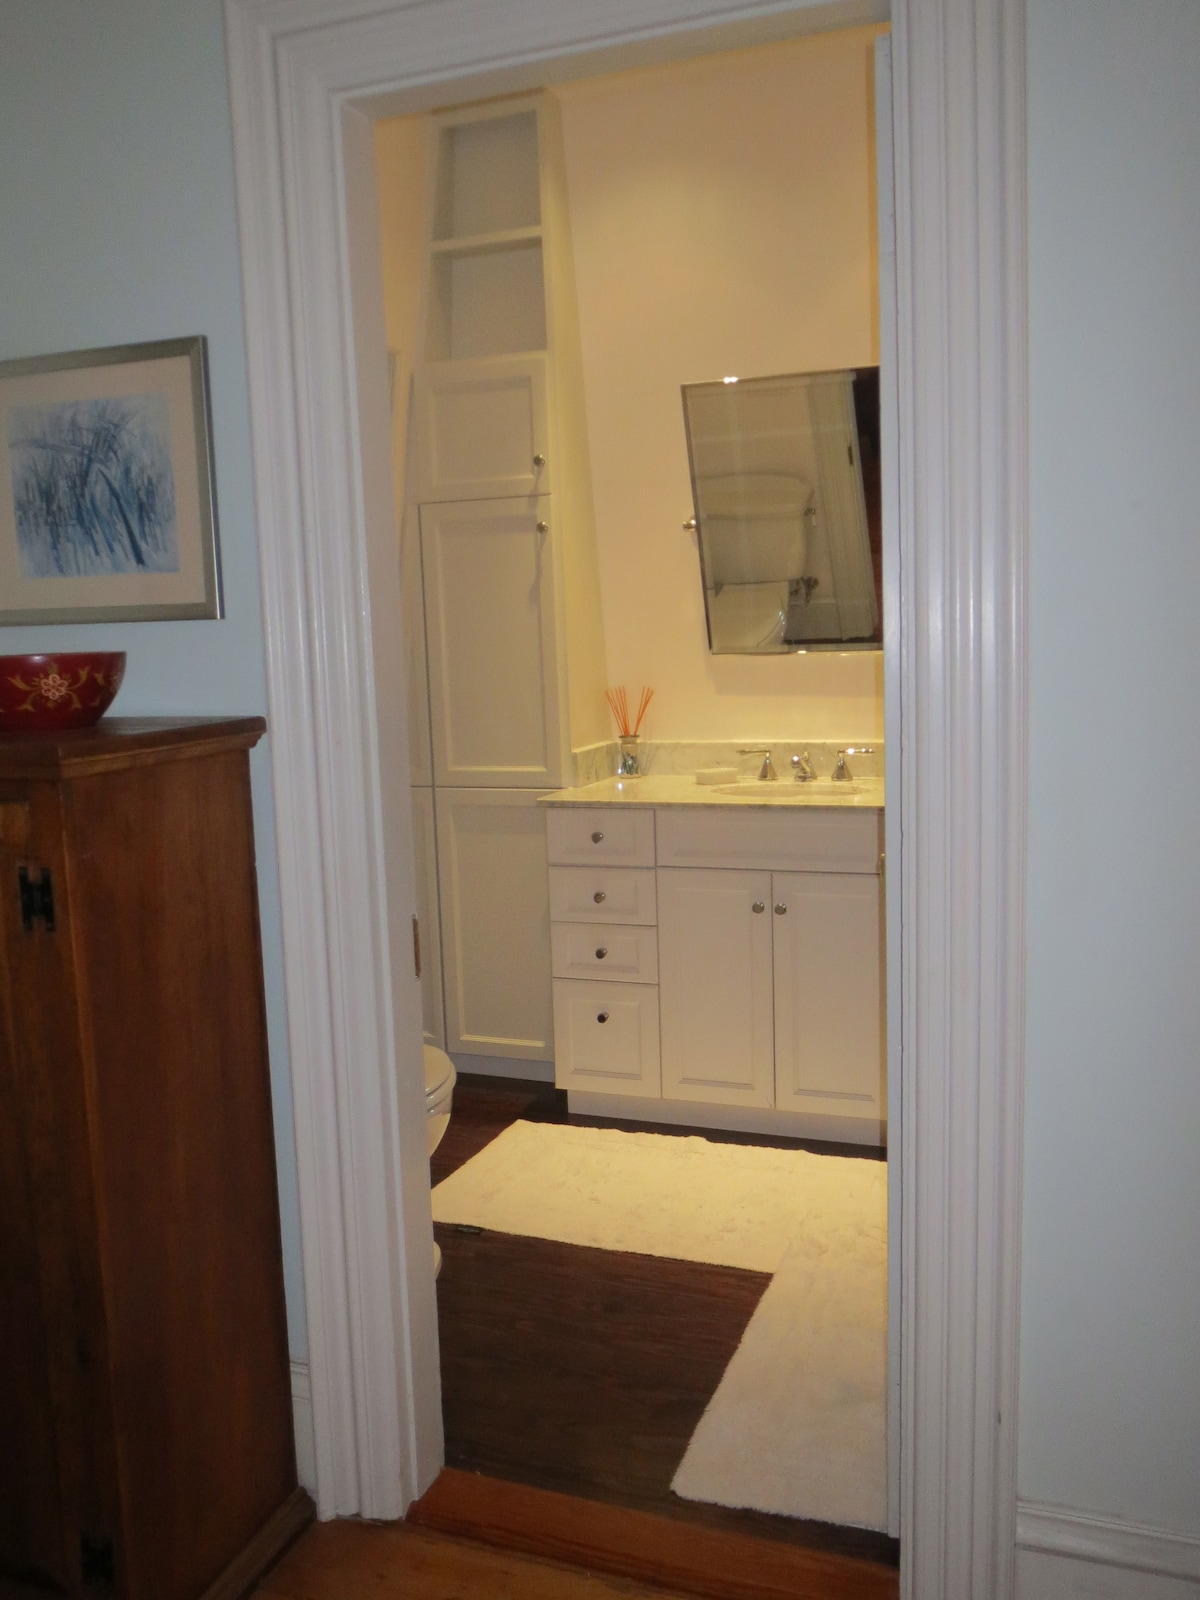 A private newly renovated bathroom.